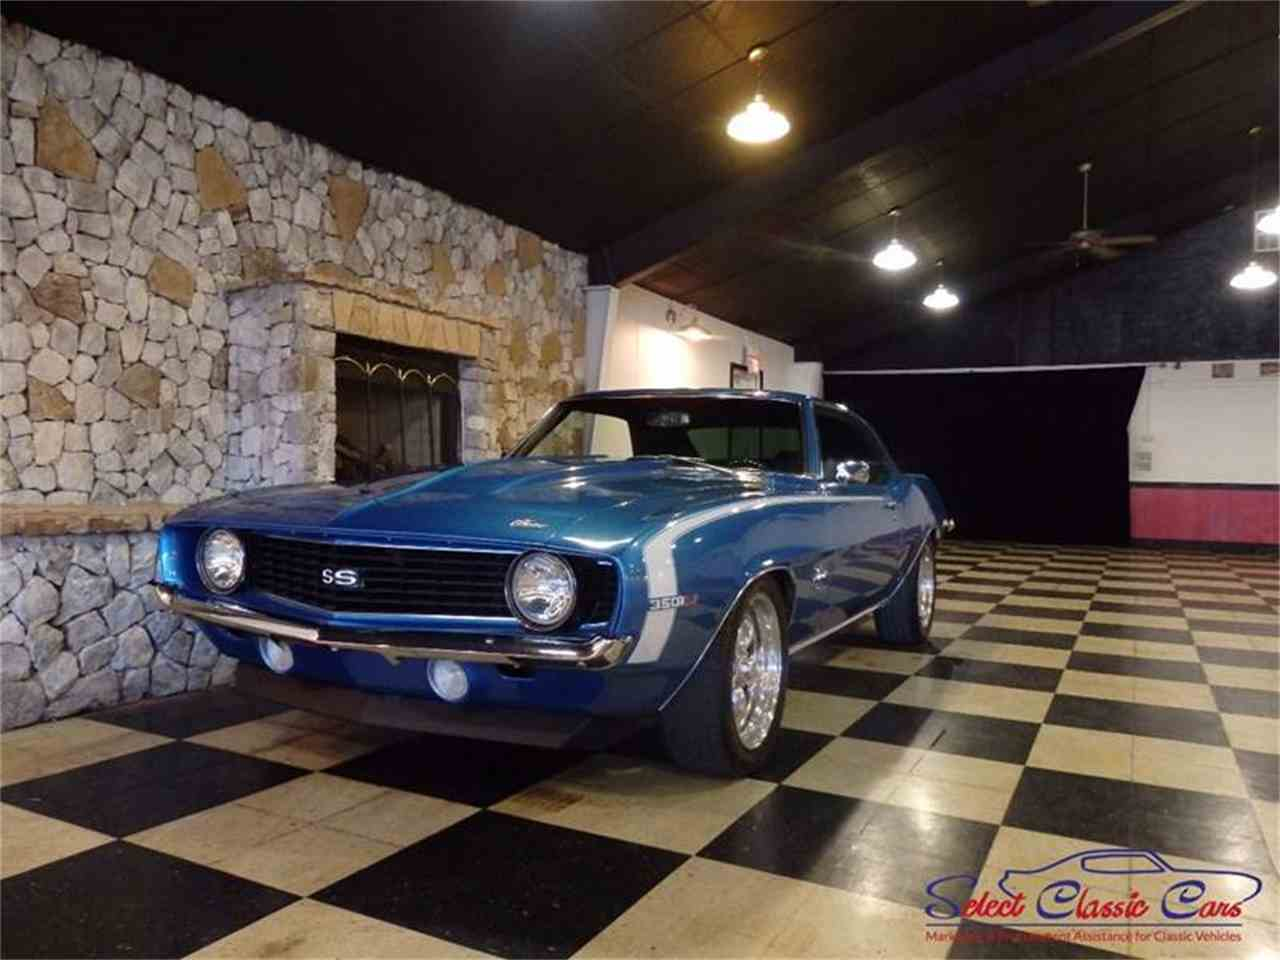 1969 camaro for sale in georgia - Large Picture Of 69 Camaro Mg2s